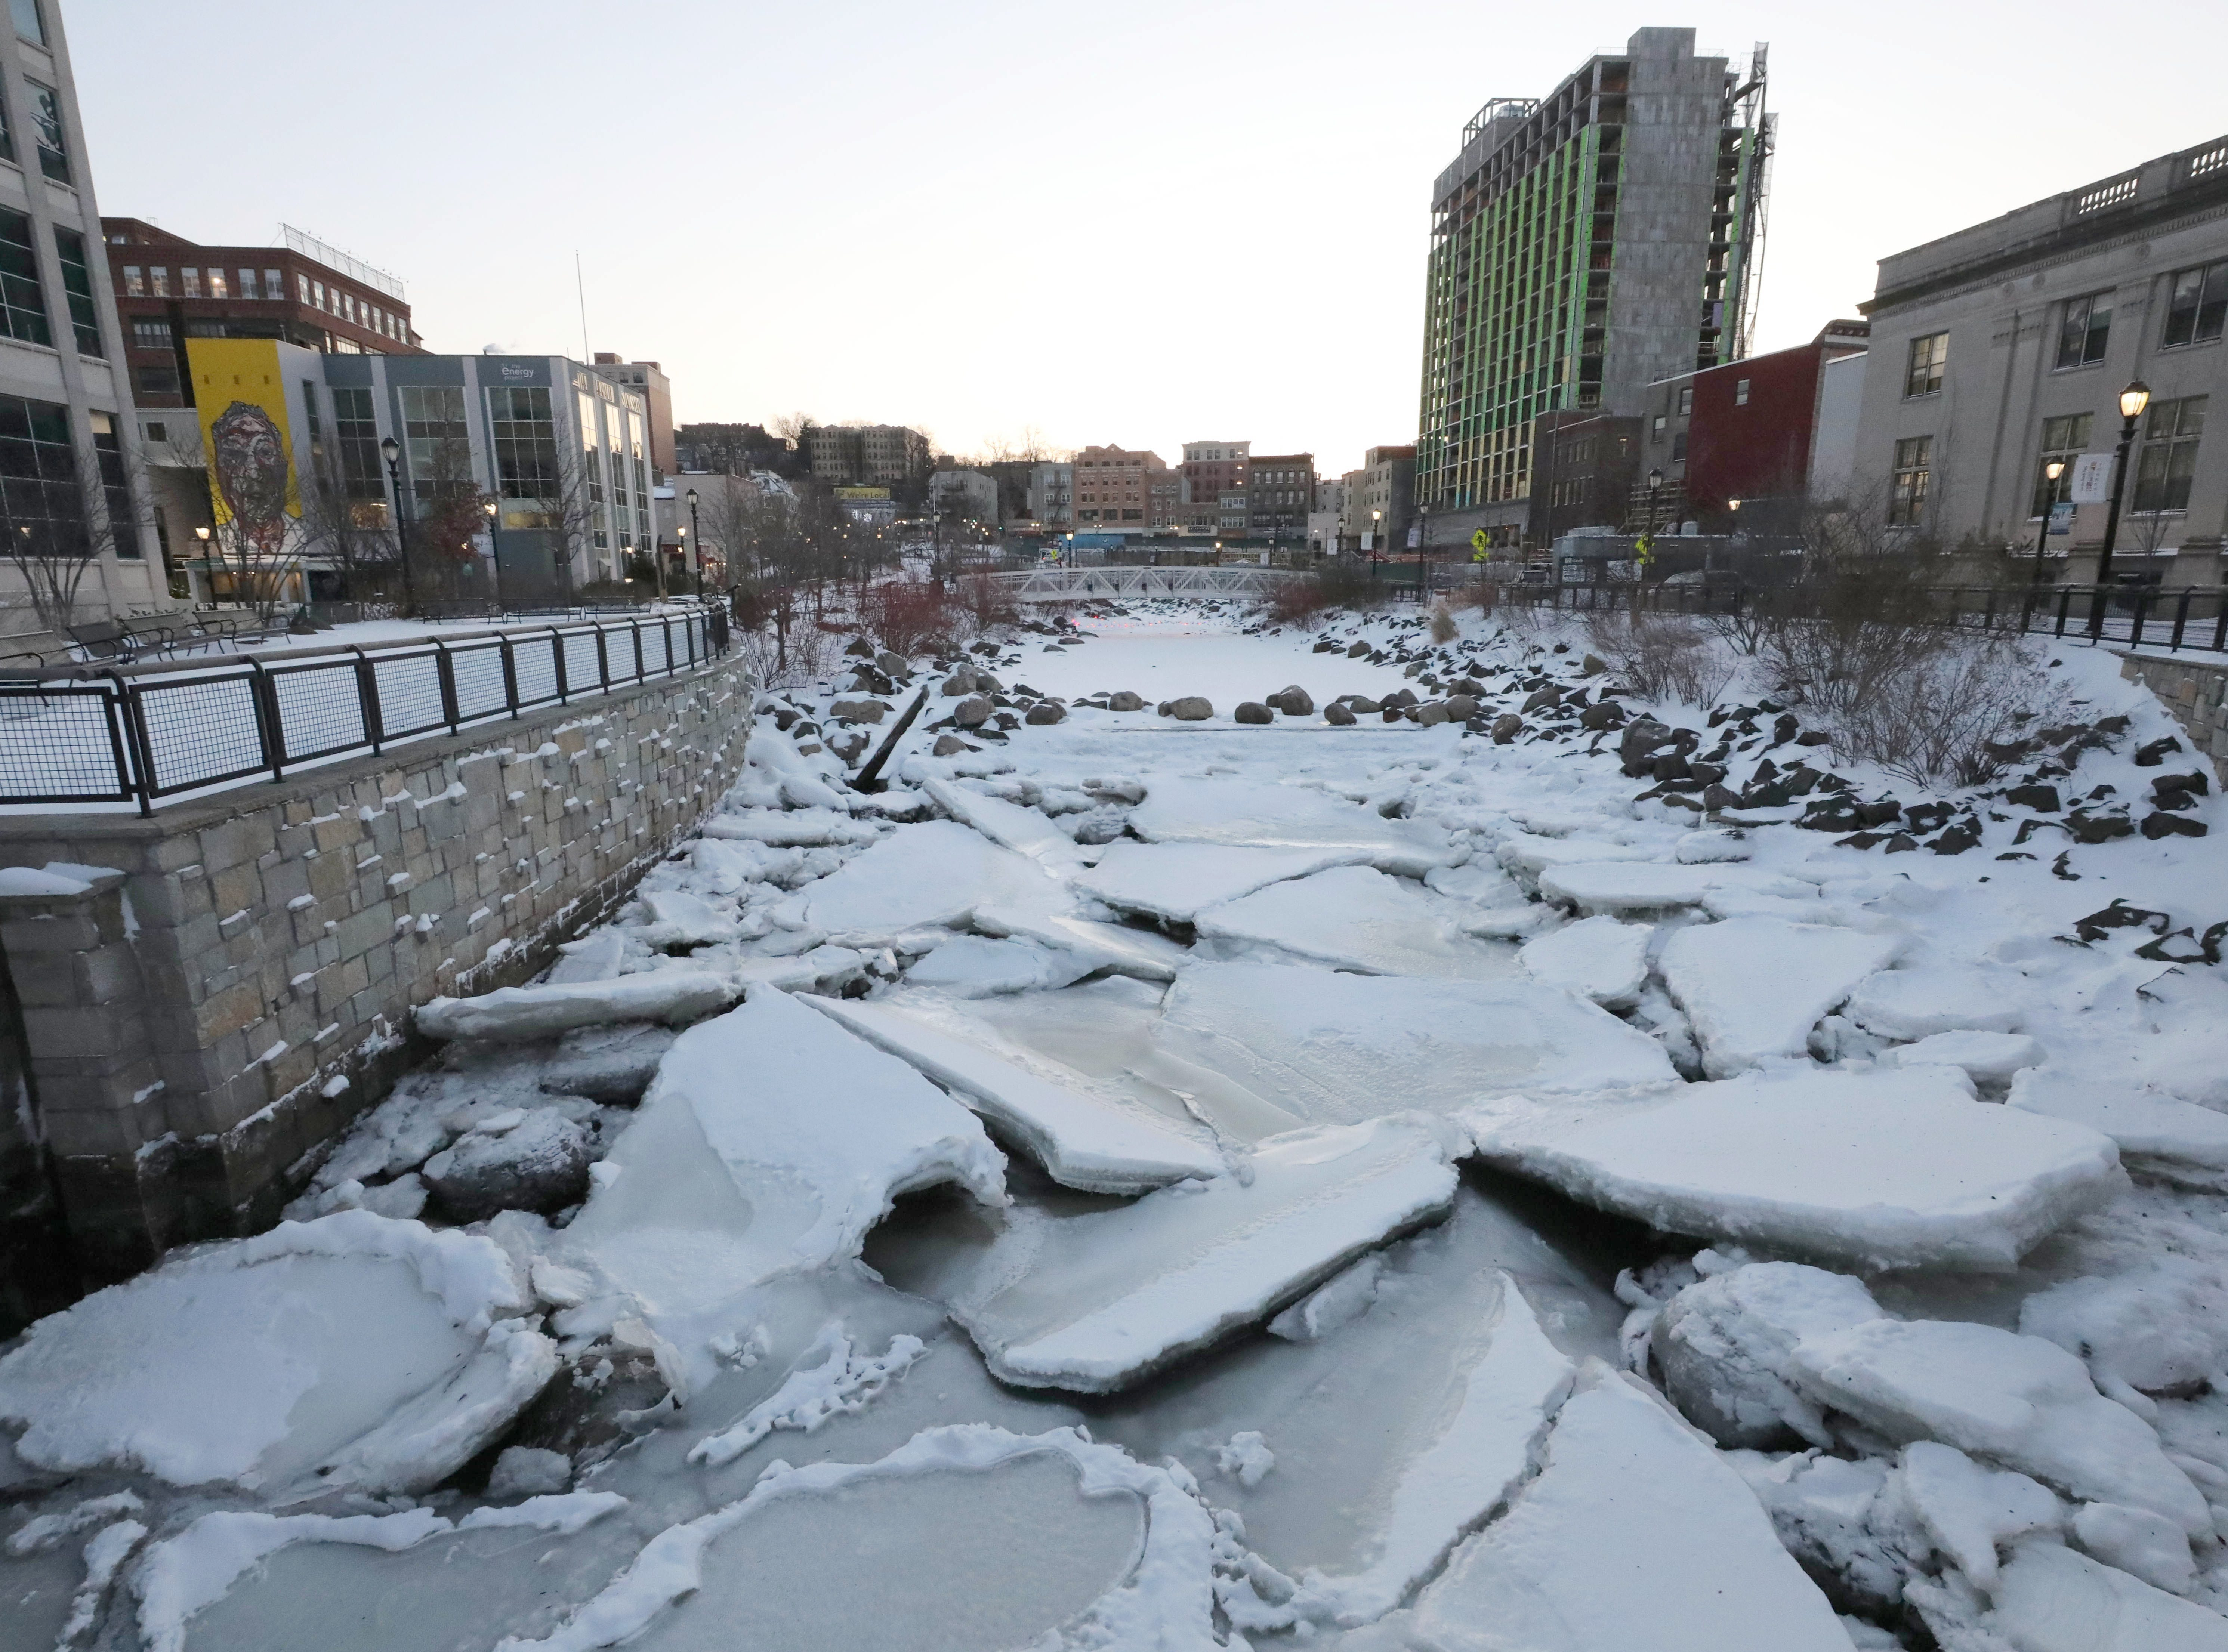 Ice plates jut out of the frozen Saw Mill River at Van der Donck Park in downtown Yonkers, Jan. 5, 2018.  The water from the river leads to the nearby Hudson River.